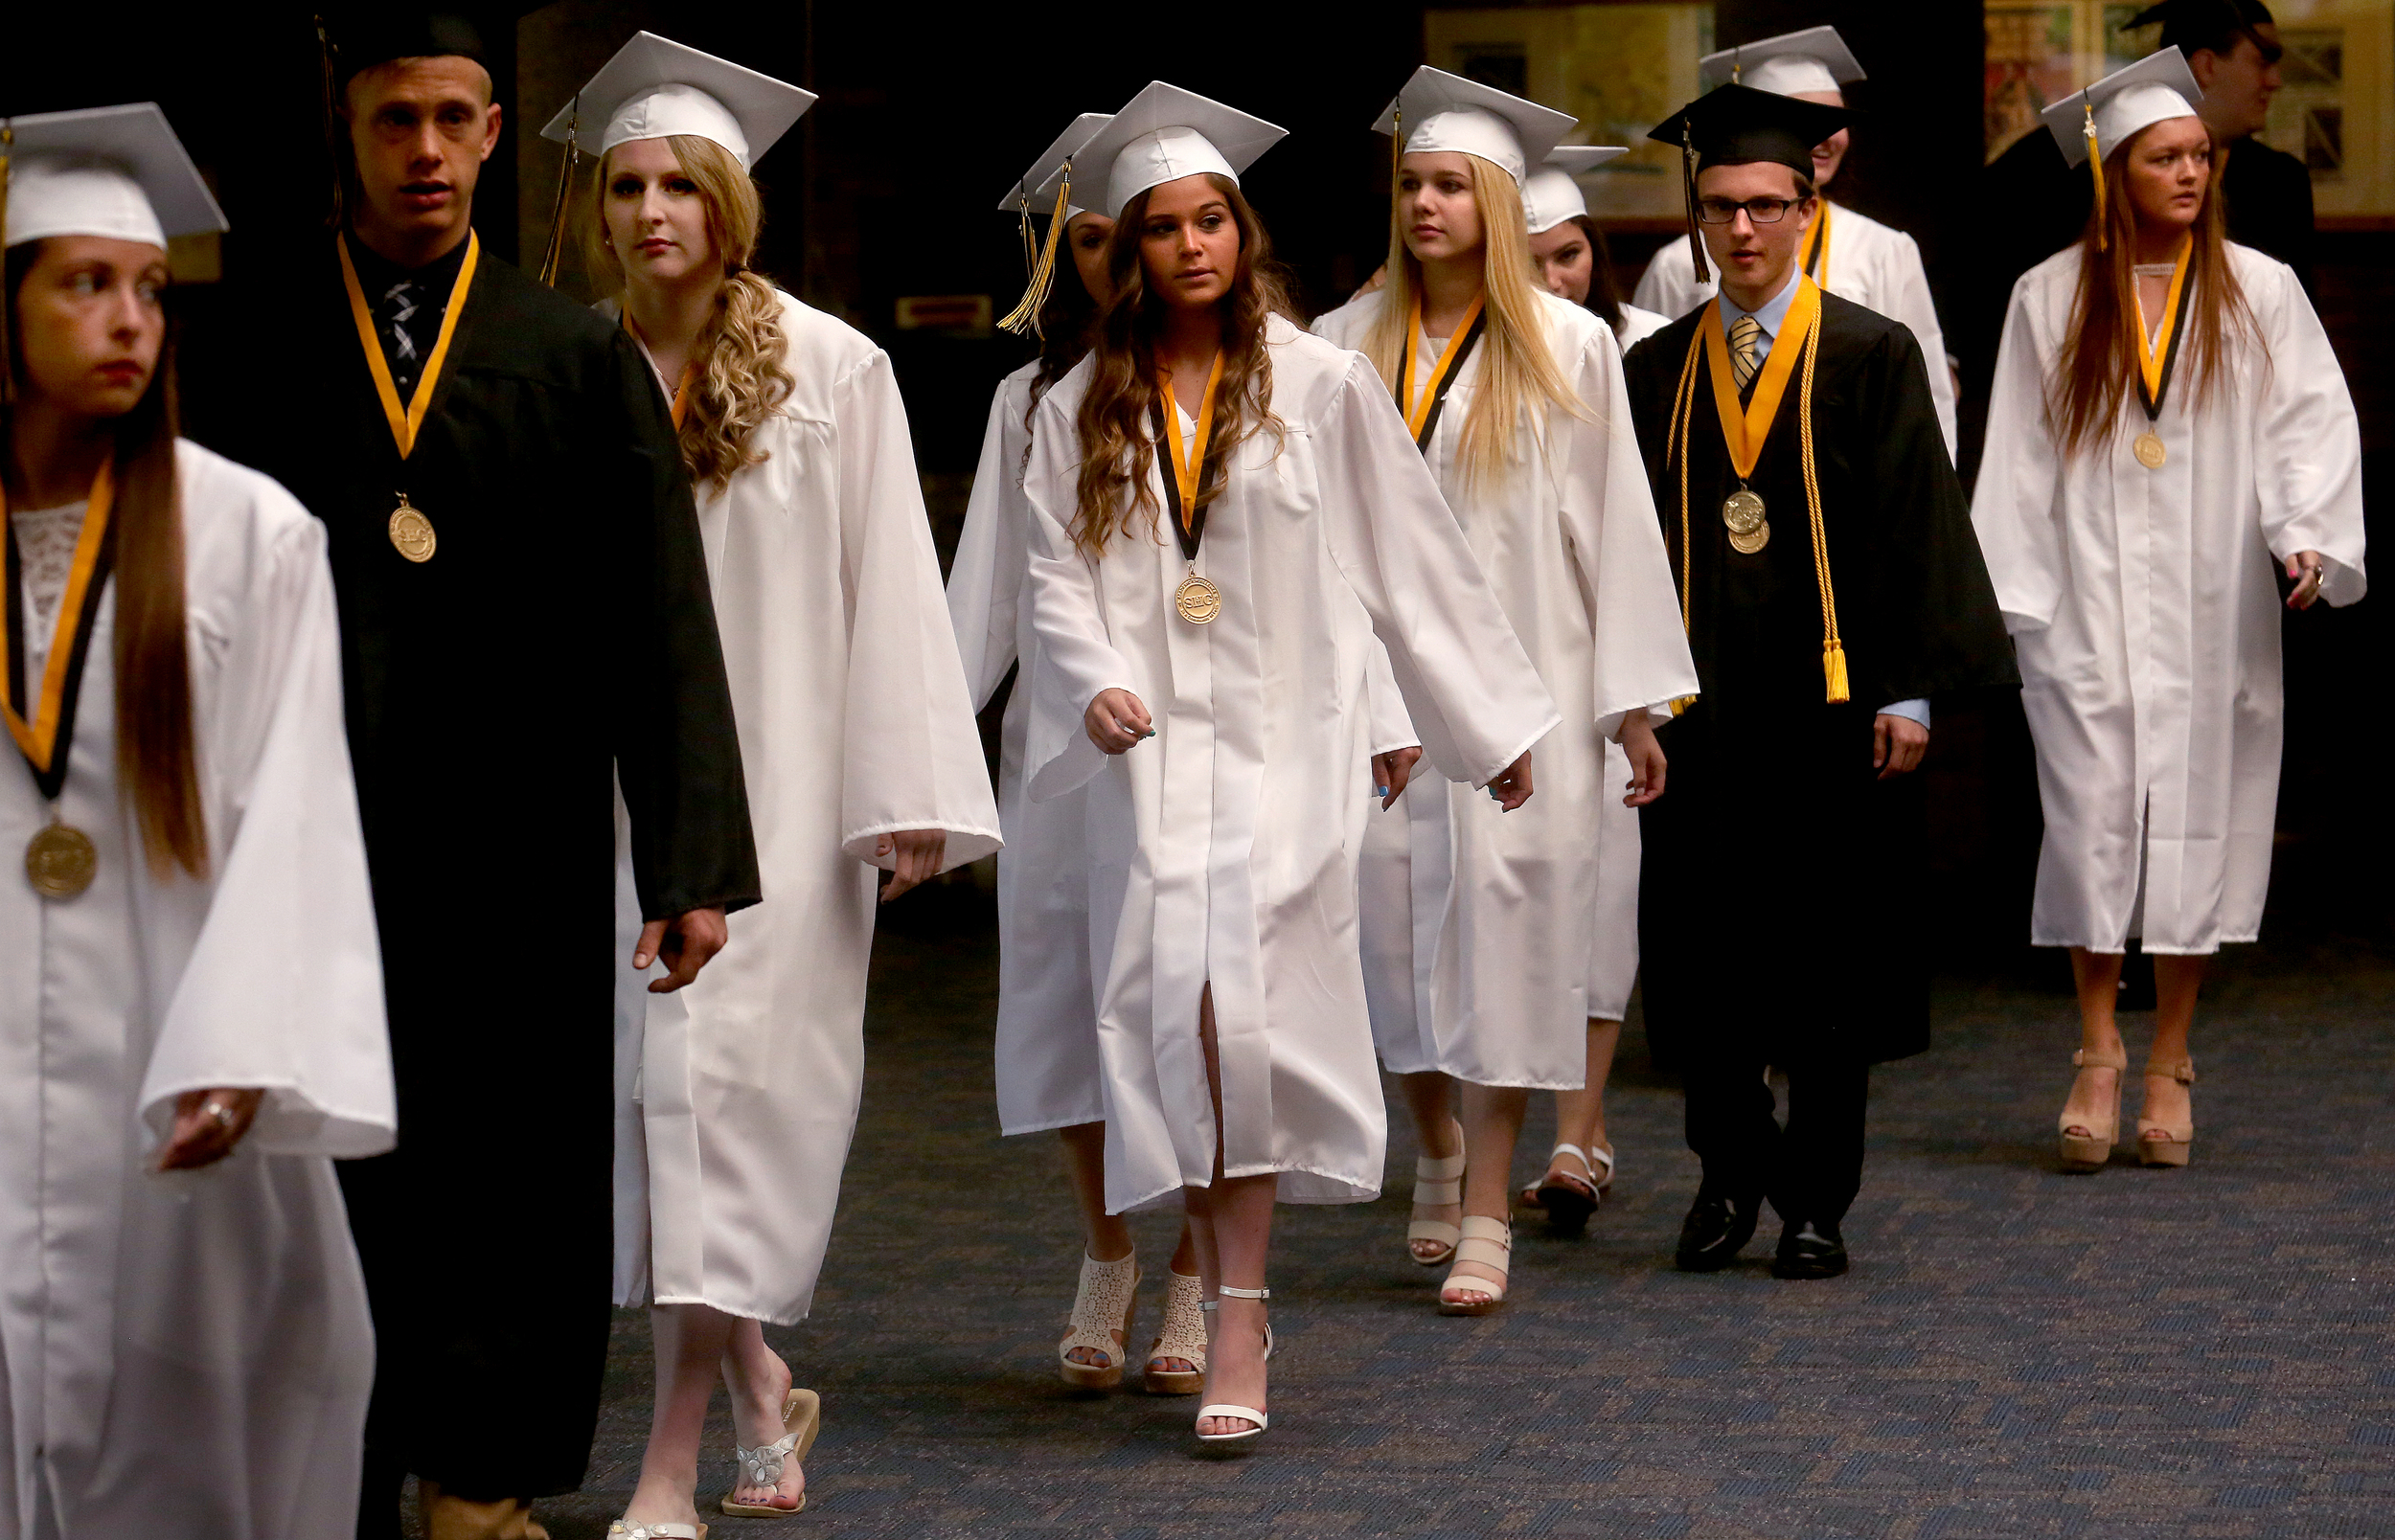 Students processed on Sunday. David Spencer/The State Journal-Register